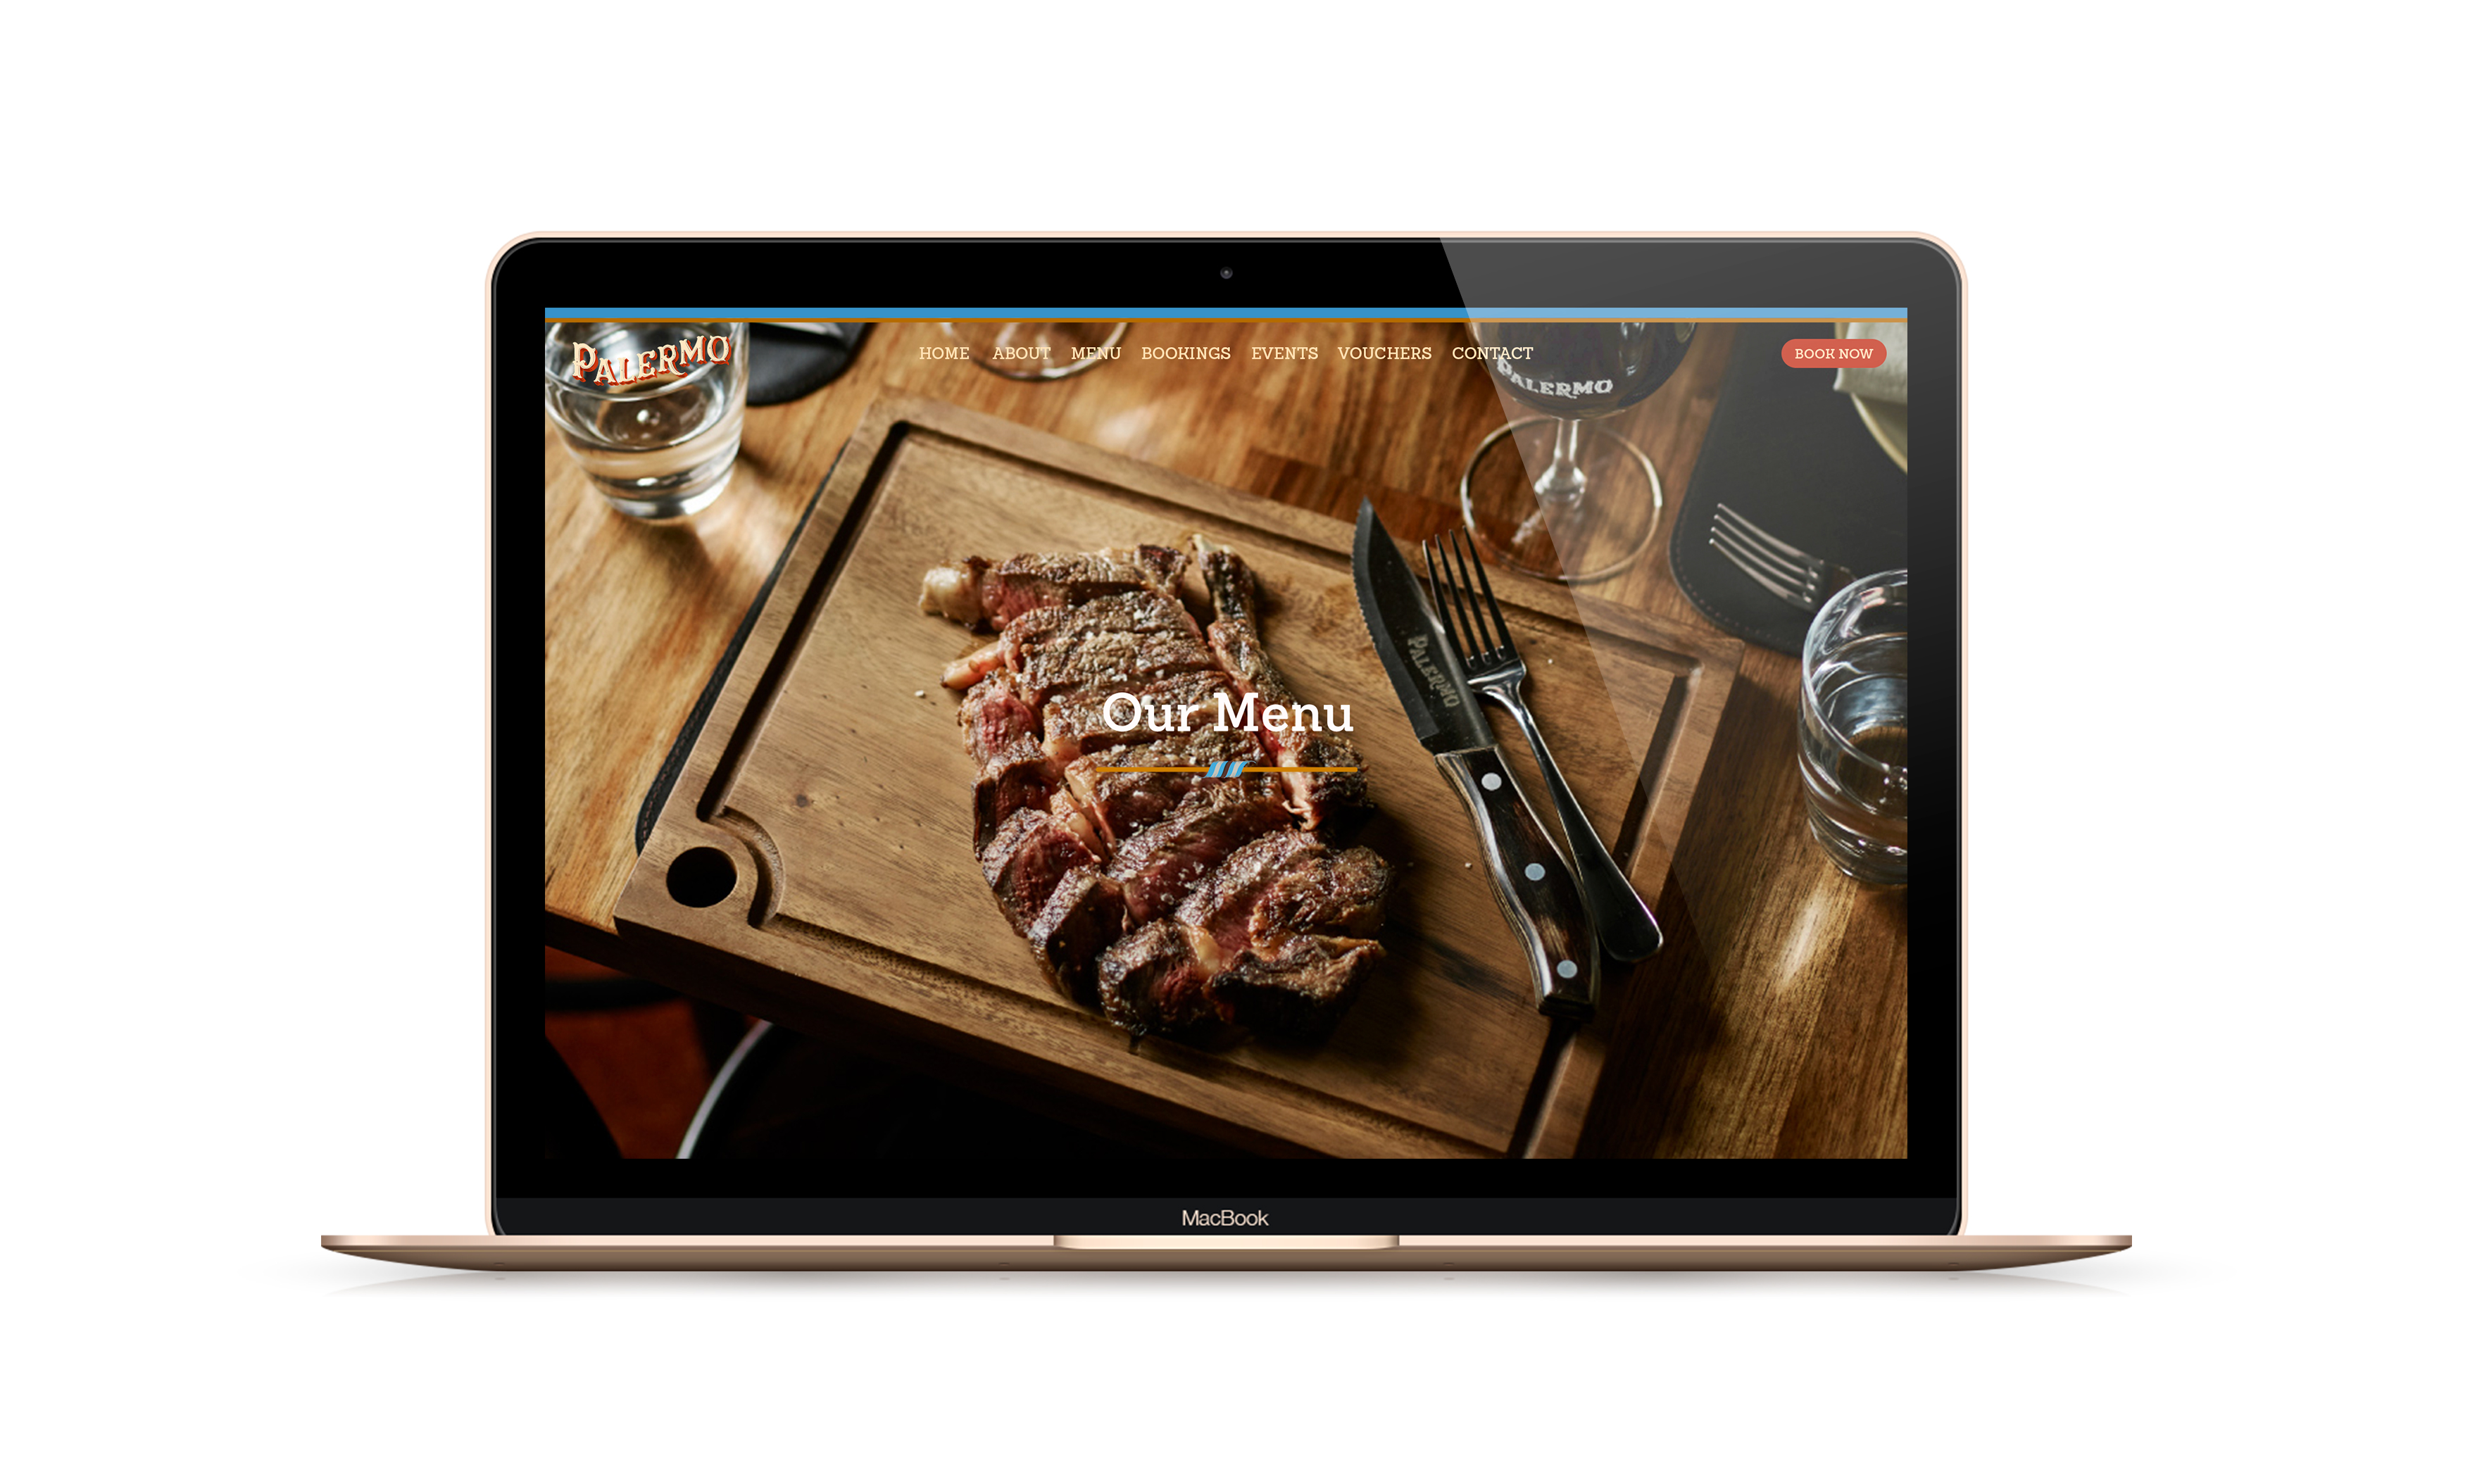 Palermo Restaurant Melbourne - website design